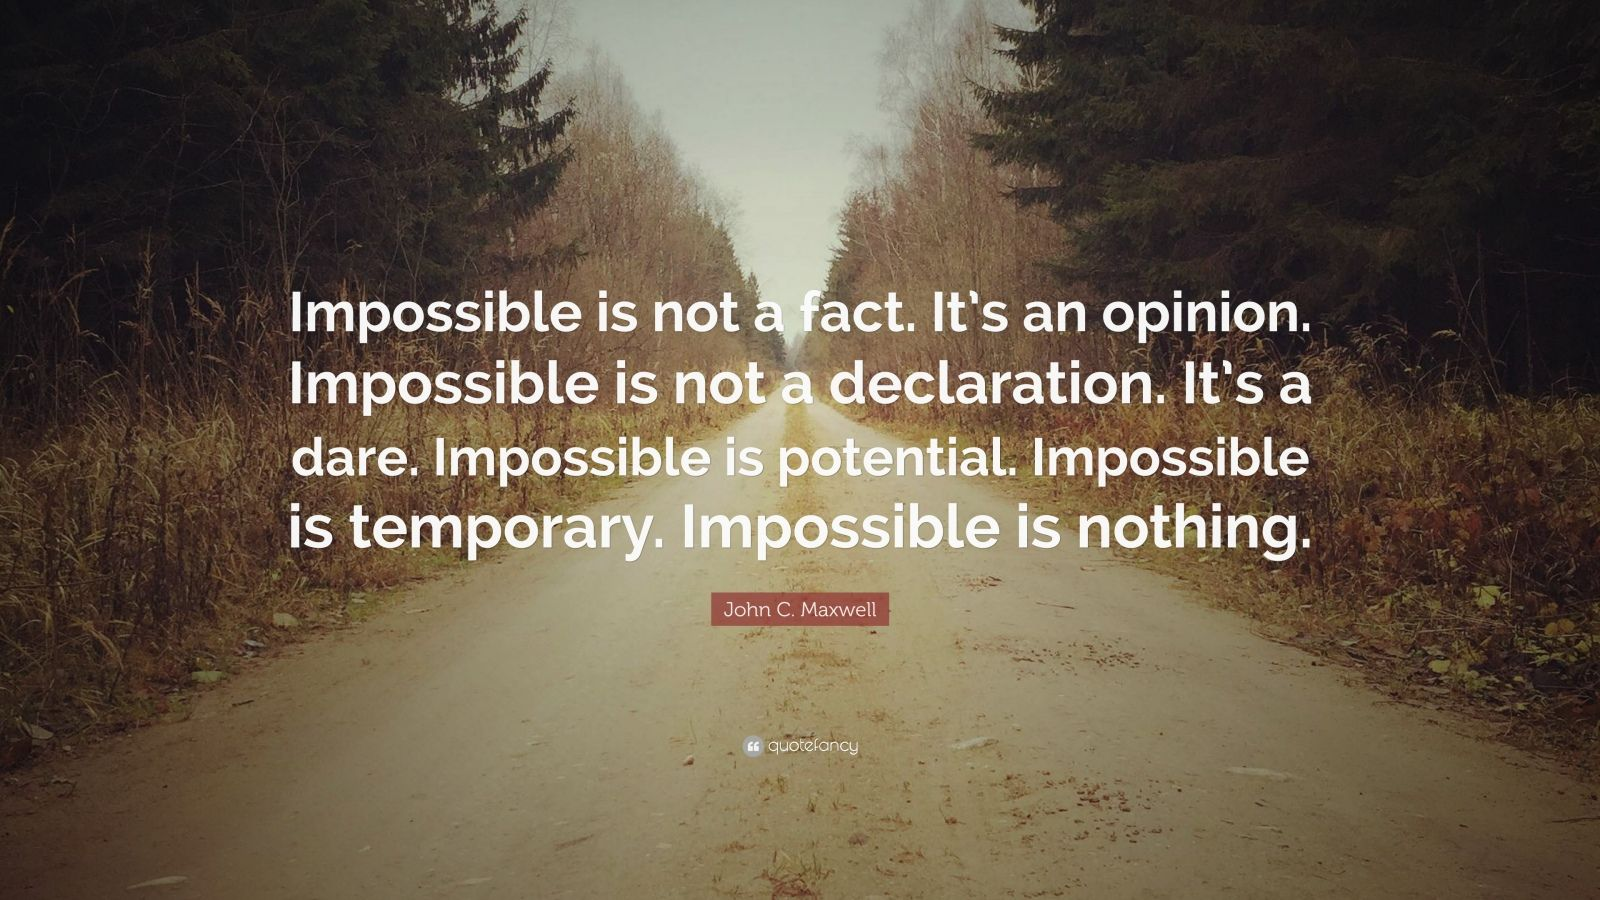 "John C. Maxwell Quote: ""Impossible is not a fact. It's an opinion. Impossible is not a declaration. It's a dare. Impossible is potential. Impossible is temporary. Impossible is nothing."""